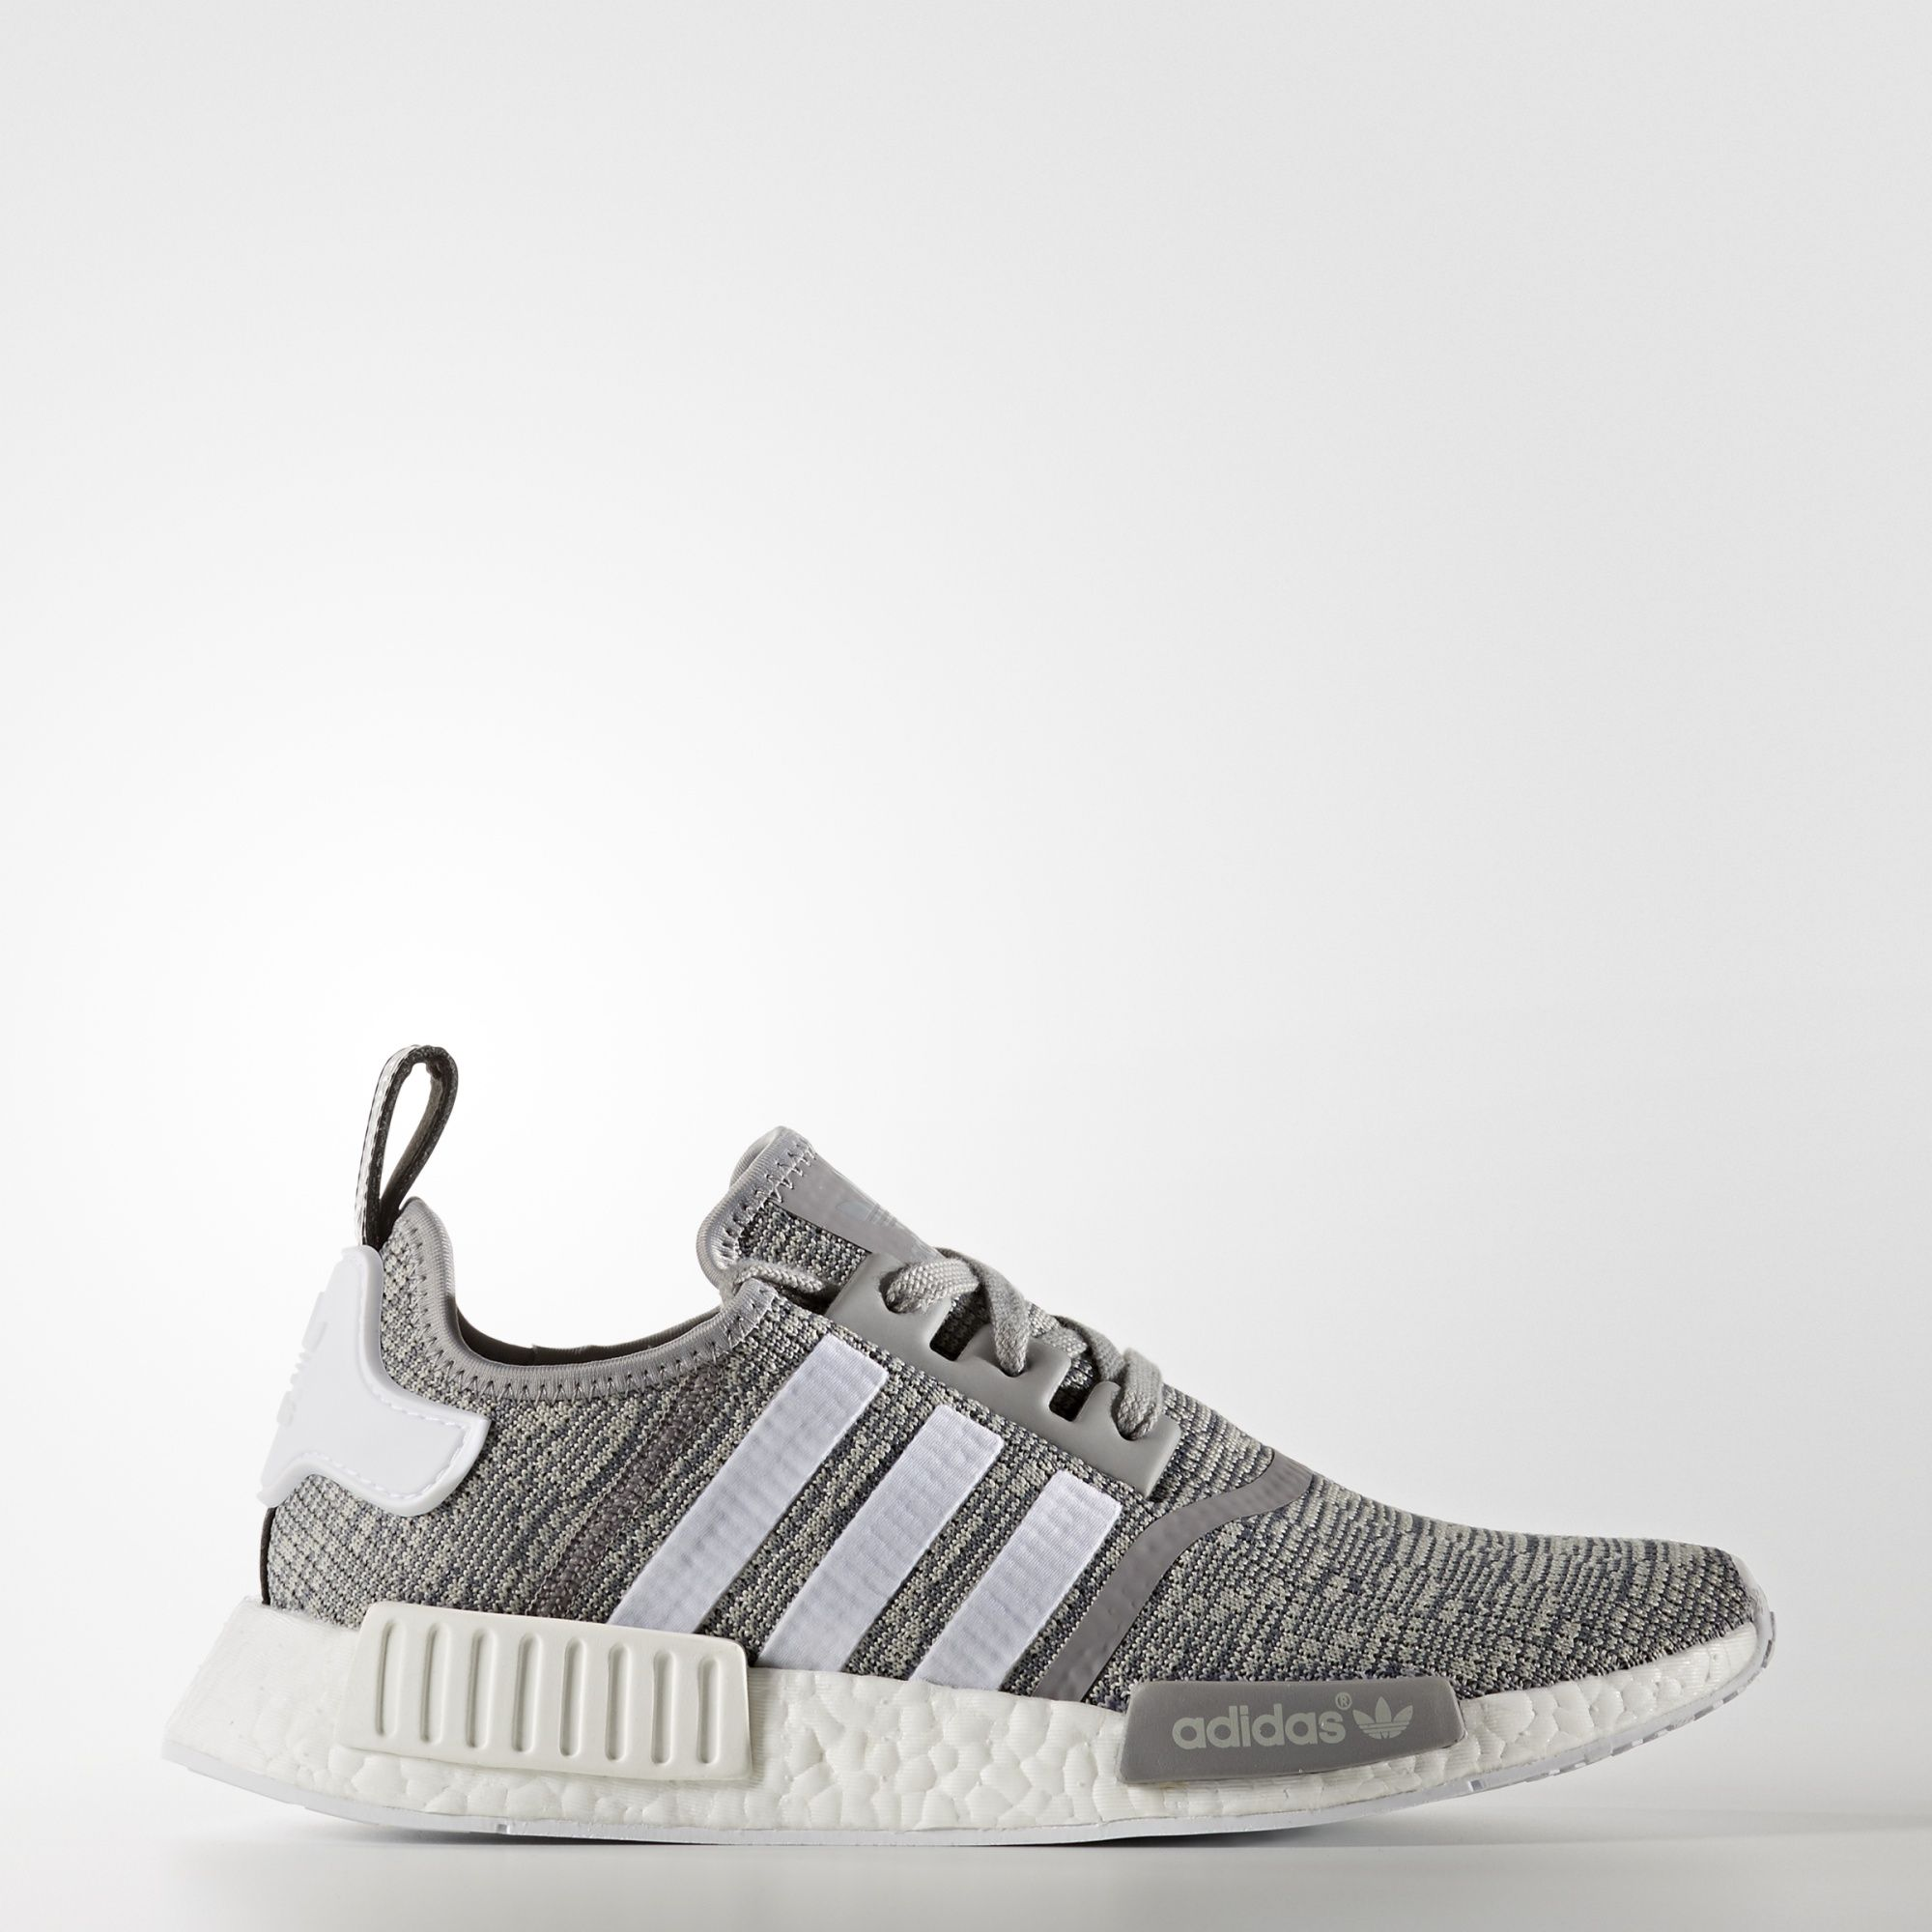 adidas nmd corridore occasionale nmd pinterest nmd, nmd r1 e adidas nmd